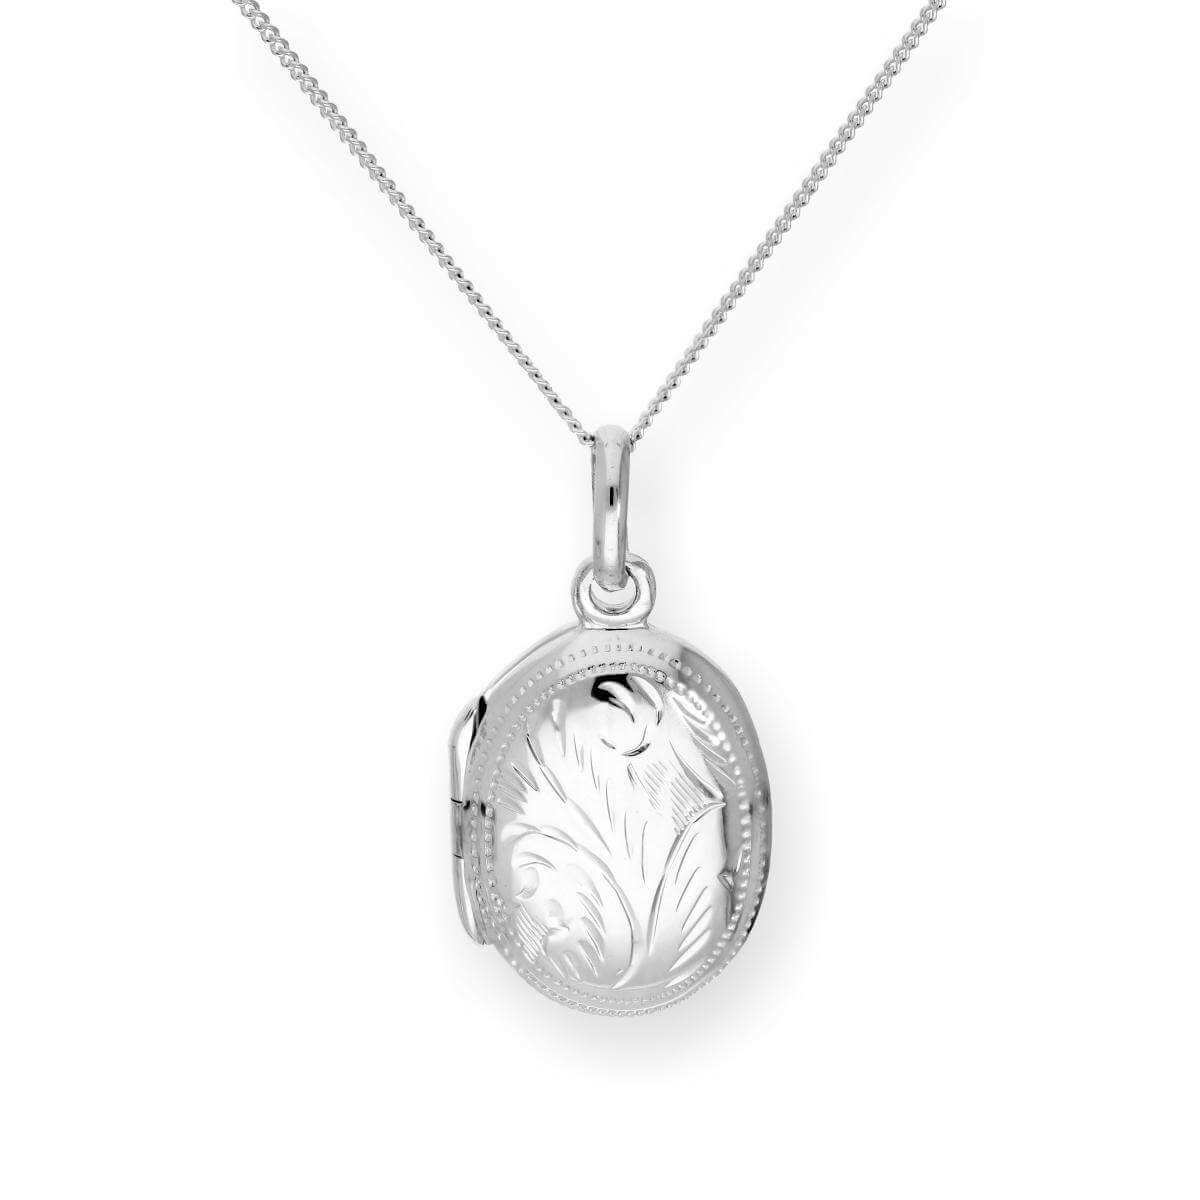 Sterling Silver Engraved Oval Locket 16 - 22 Inches